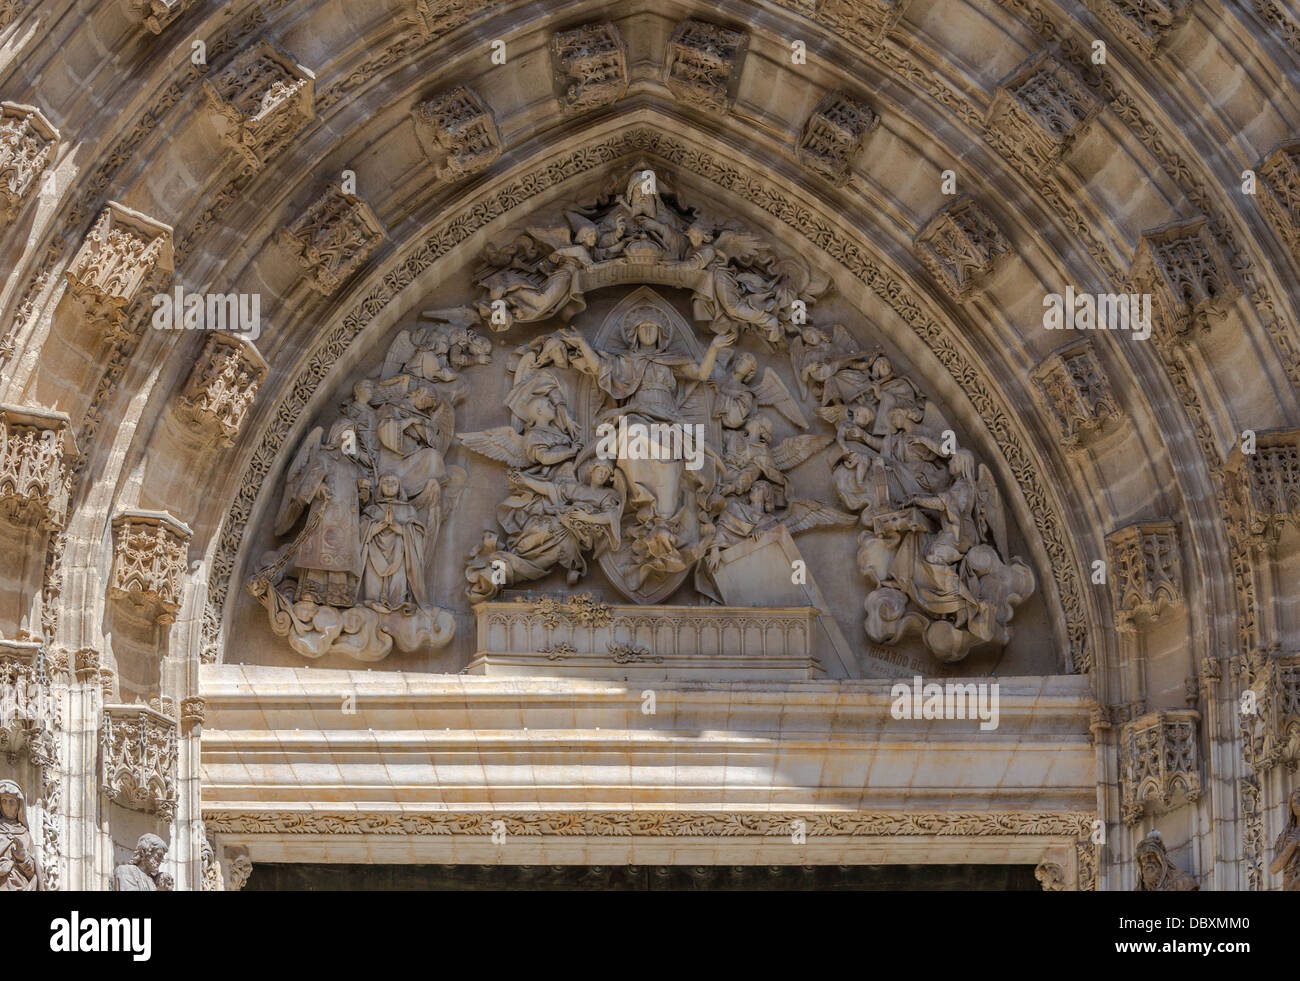 The neo-gothic tympanum of the 'Assumption portal', from 1882, by sculptor Ricardo Bellver y Ramon, main - Stock Image